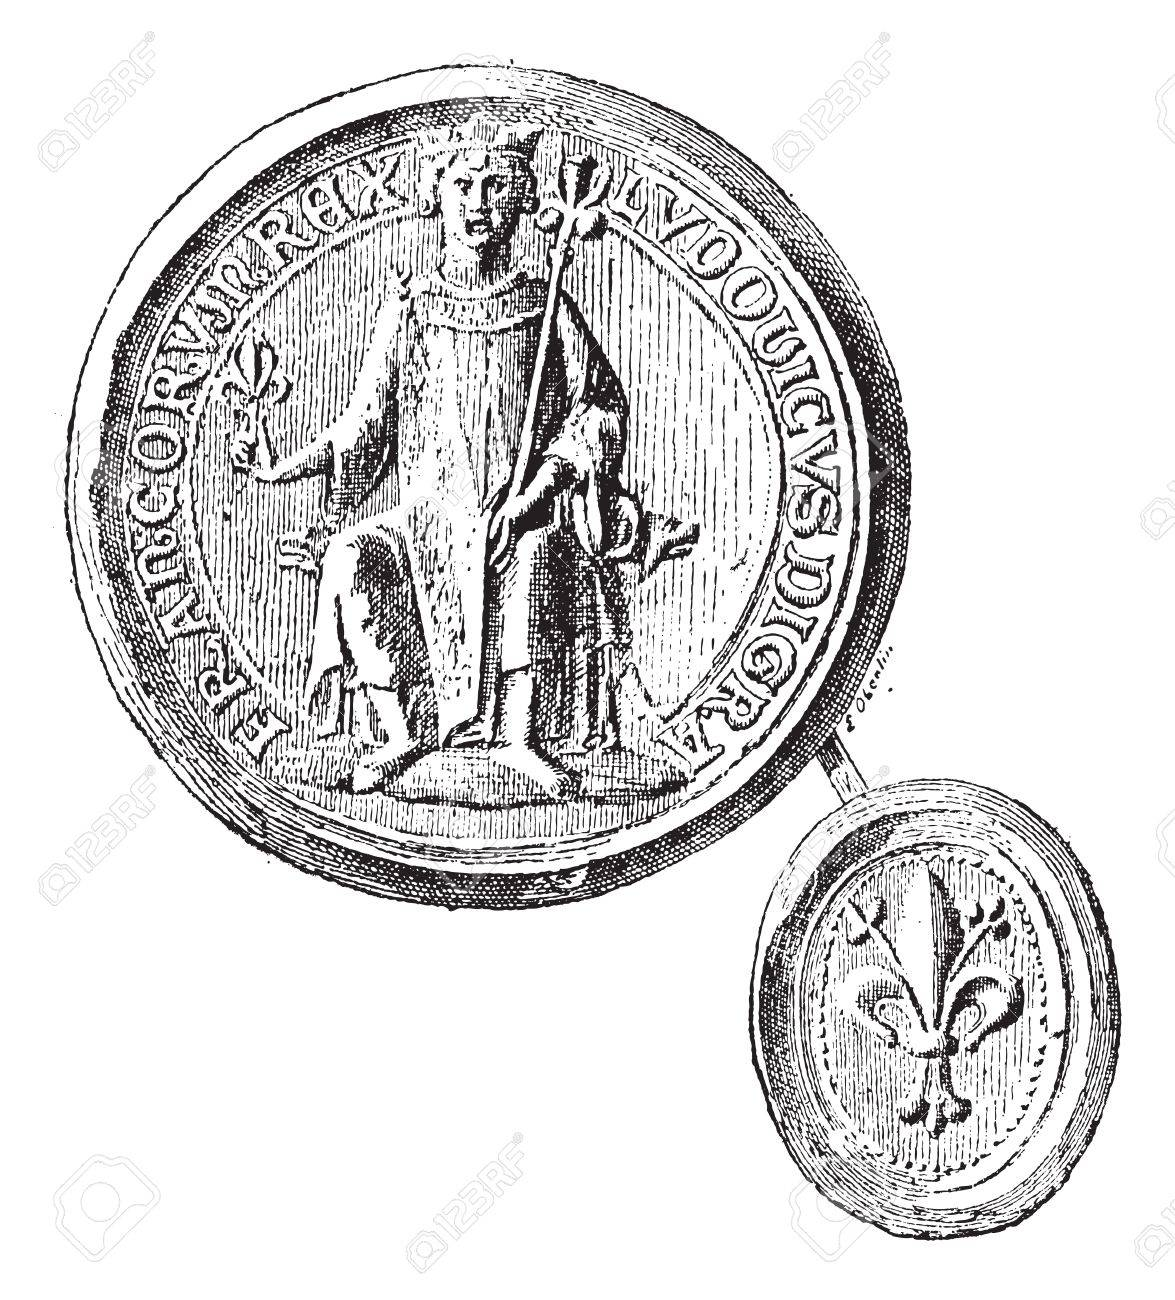 Seal against seal- employees by St. Louis to the first crusade, vintage engraved illustration. Dictionary of words and things - Larive and Fleury - 1895. Stock Vector - 13770506